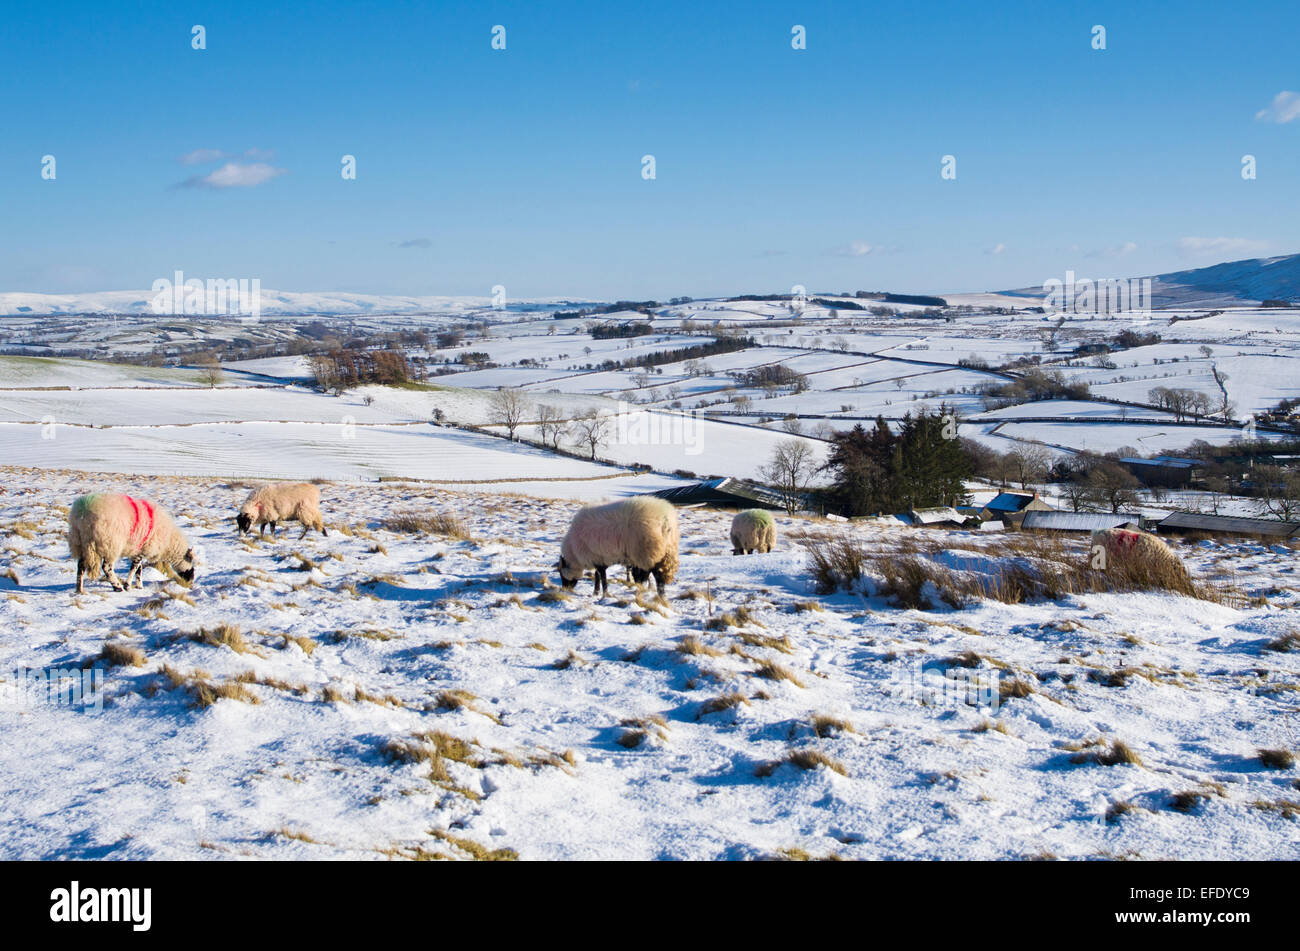 Lake District, Cumbria, UK. 1st February, 2015. UK Weather: After recent snowfall, sheep graze in snow on high moorland - Stock Image